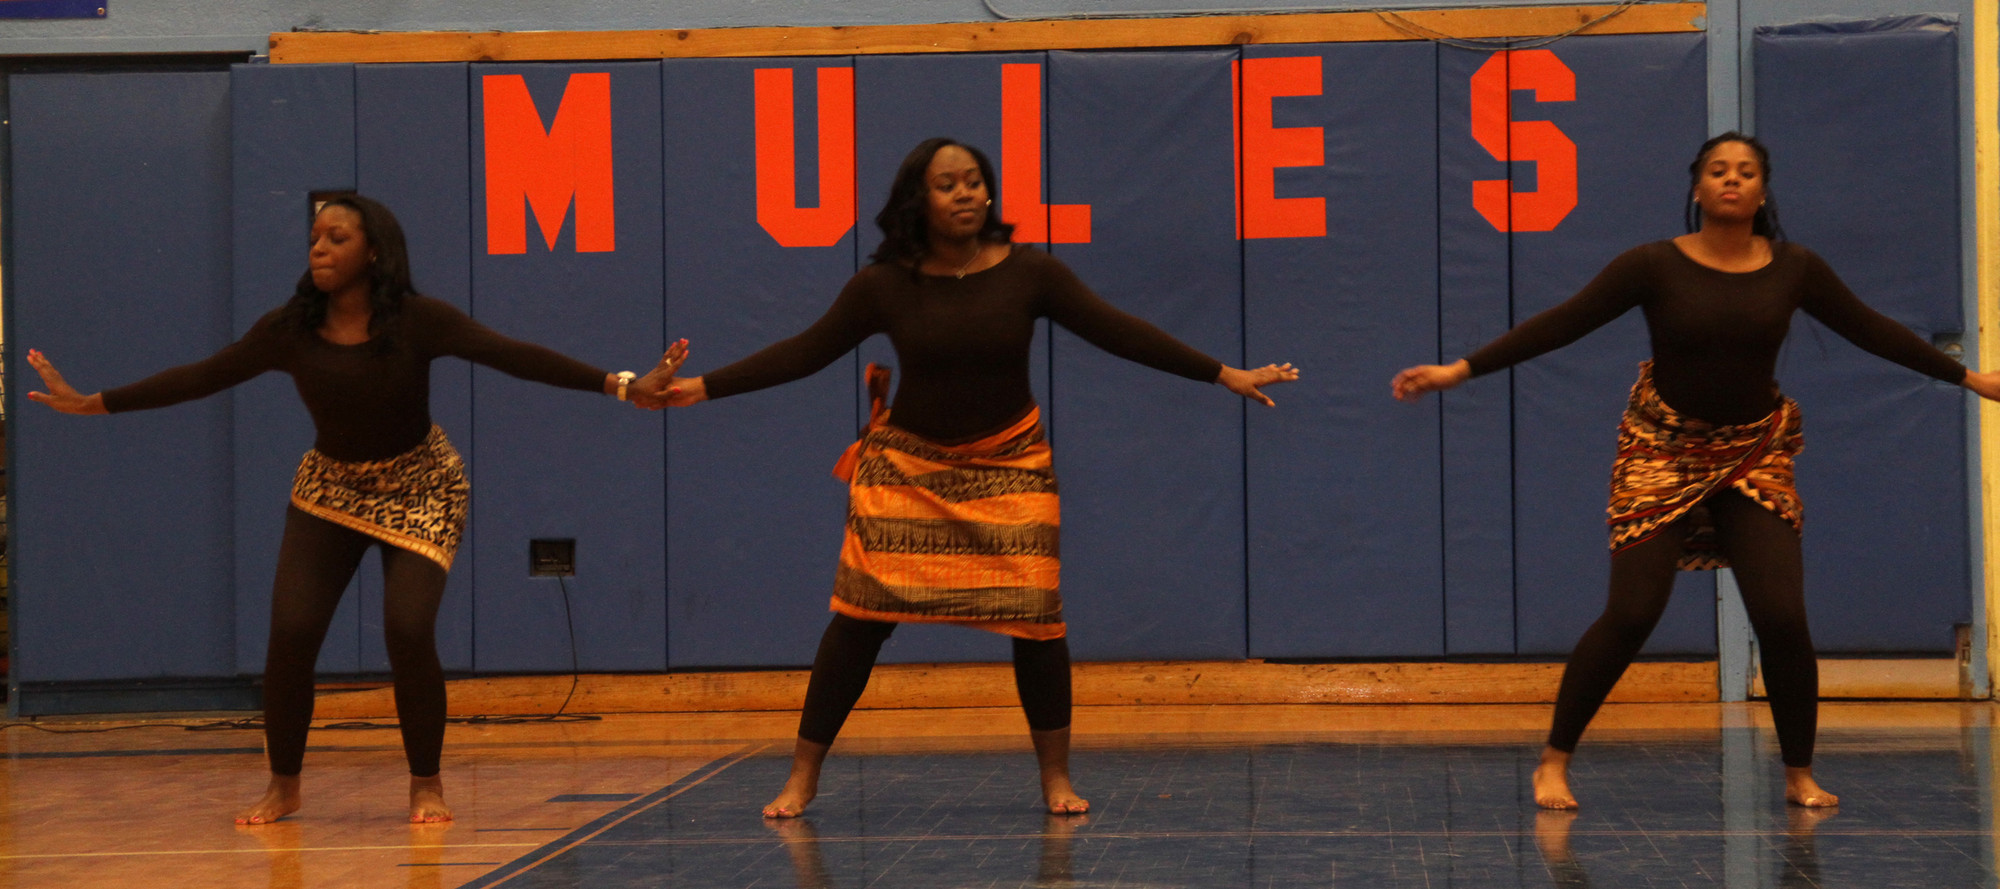 Jessica Findlayter, Courtney Moore and Tori Thomas performed an African dance at this year's event.